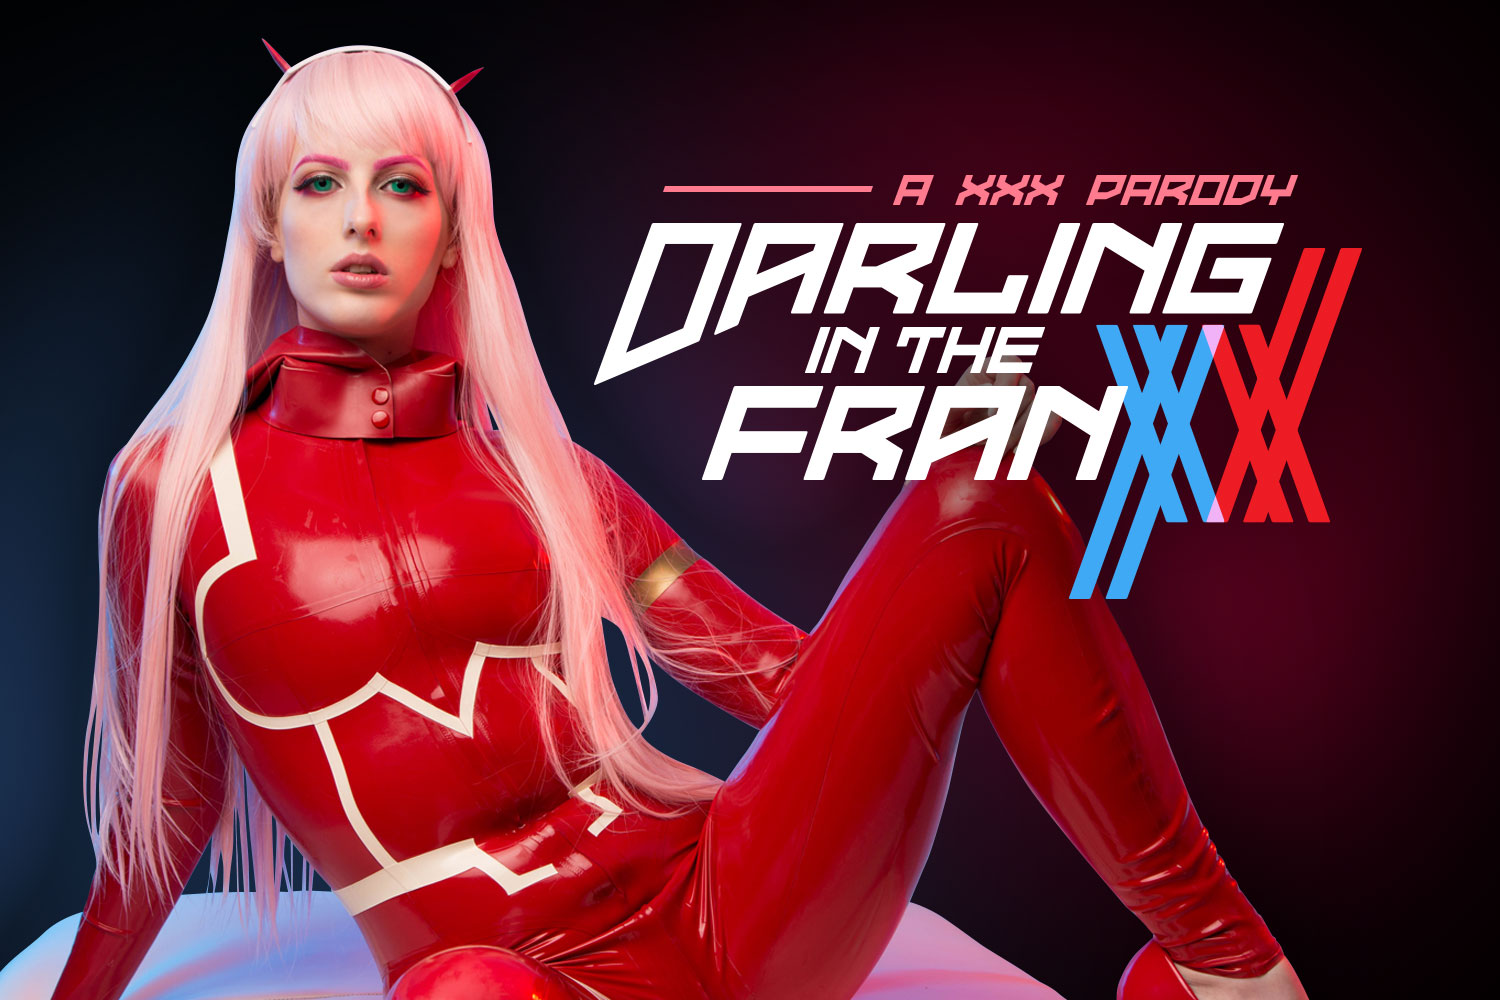 Darling in The Franxx A XXX Parody Alex Harper